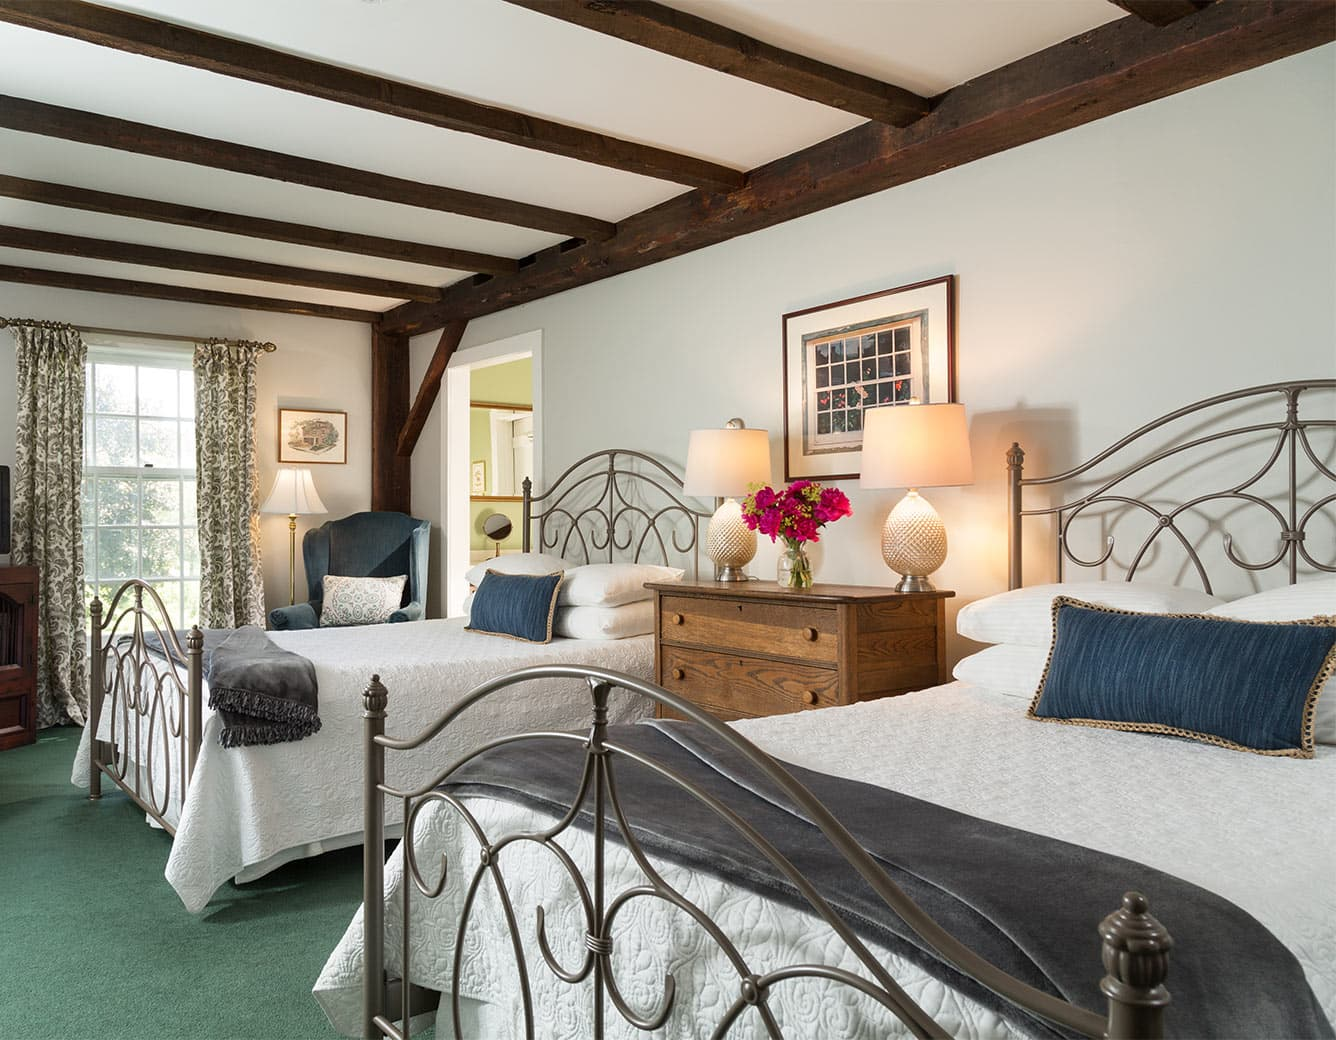 Two Double Beds in Room 11